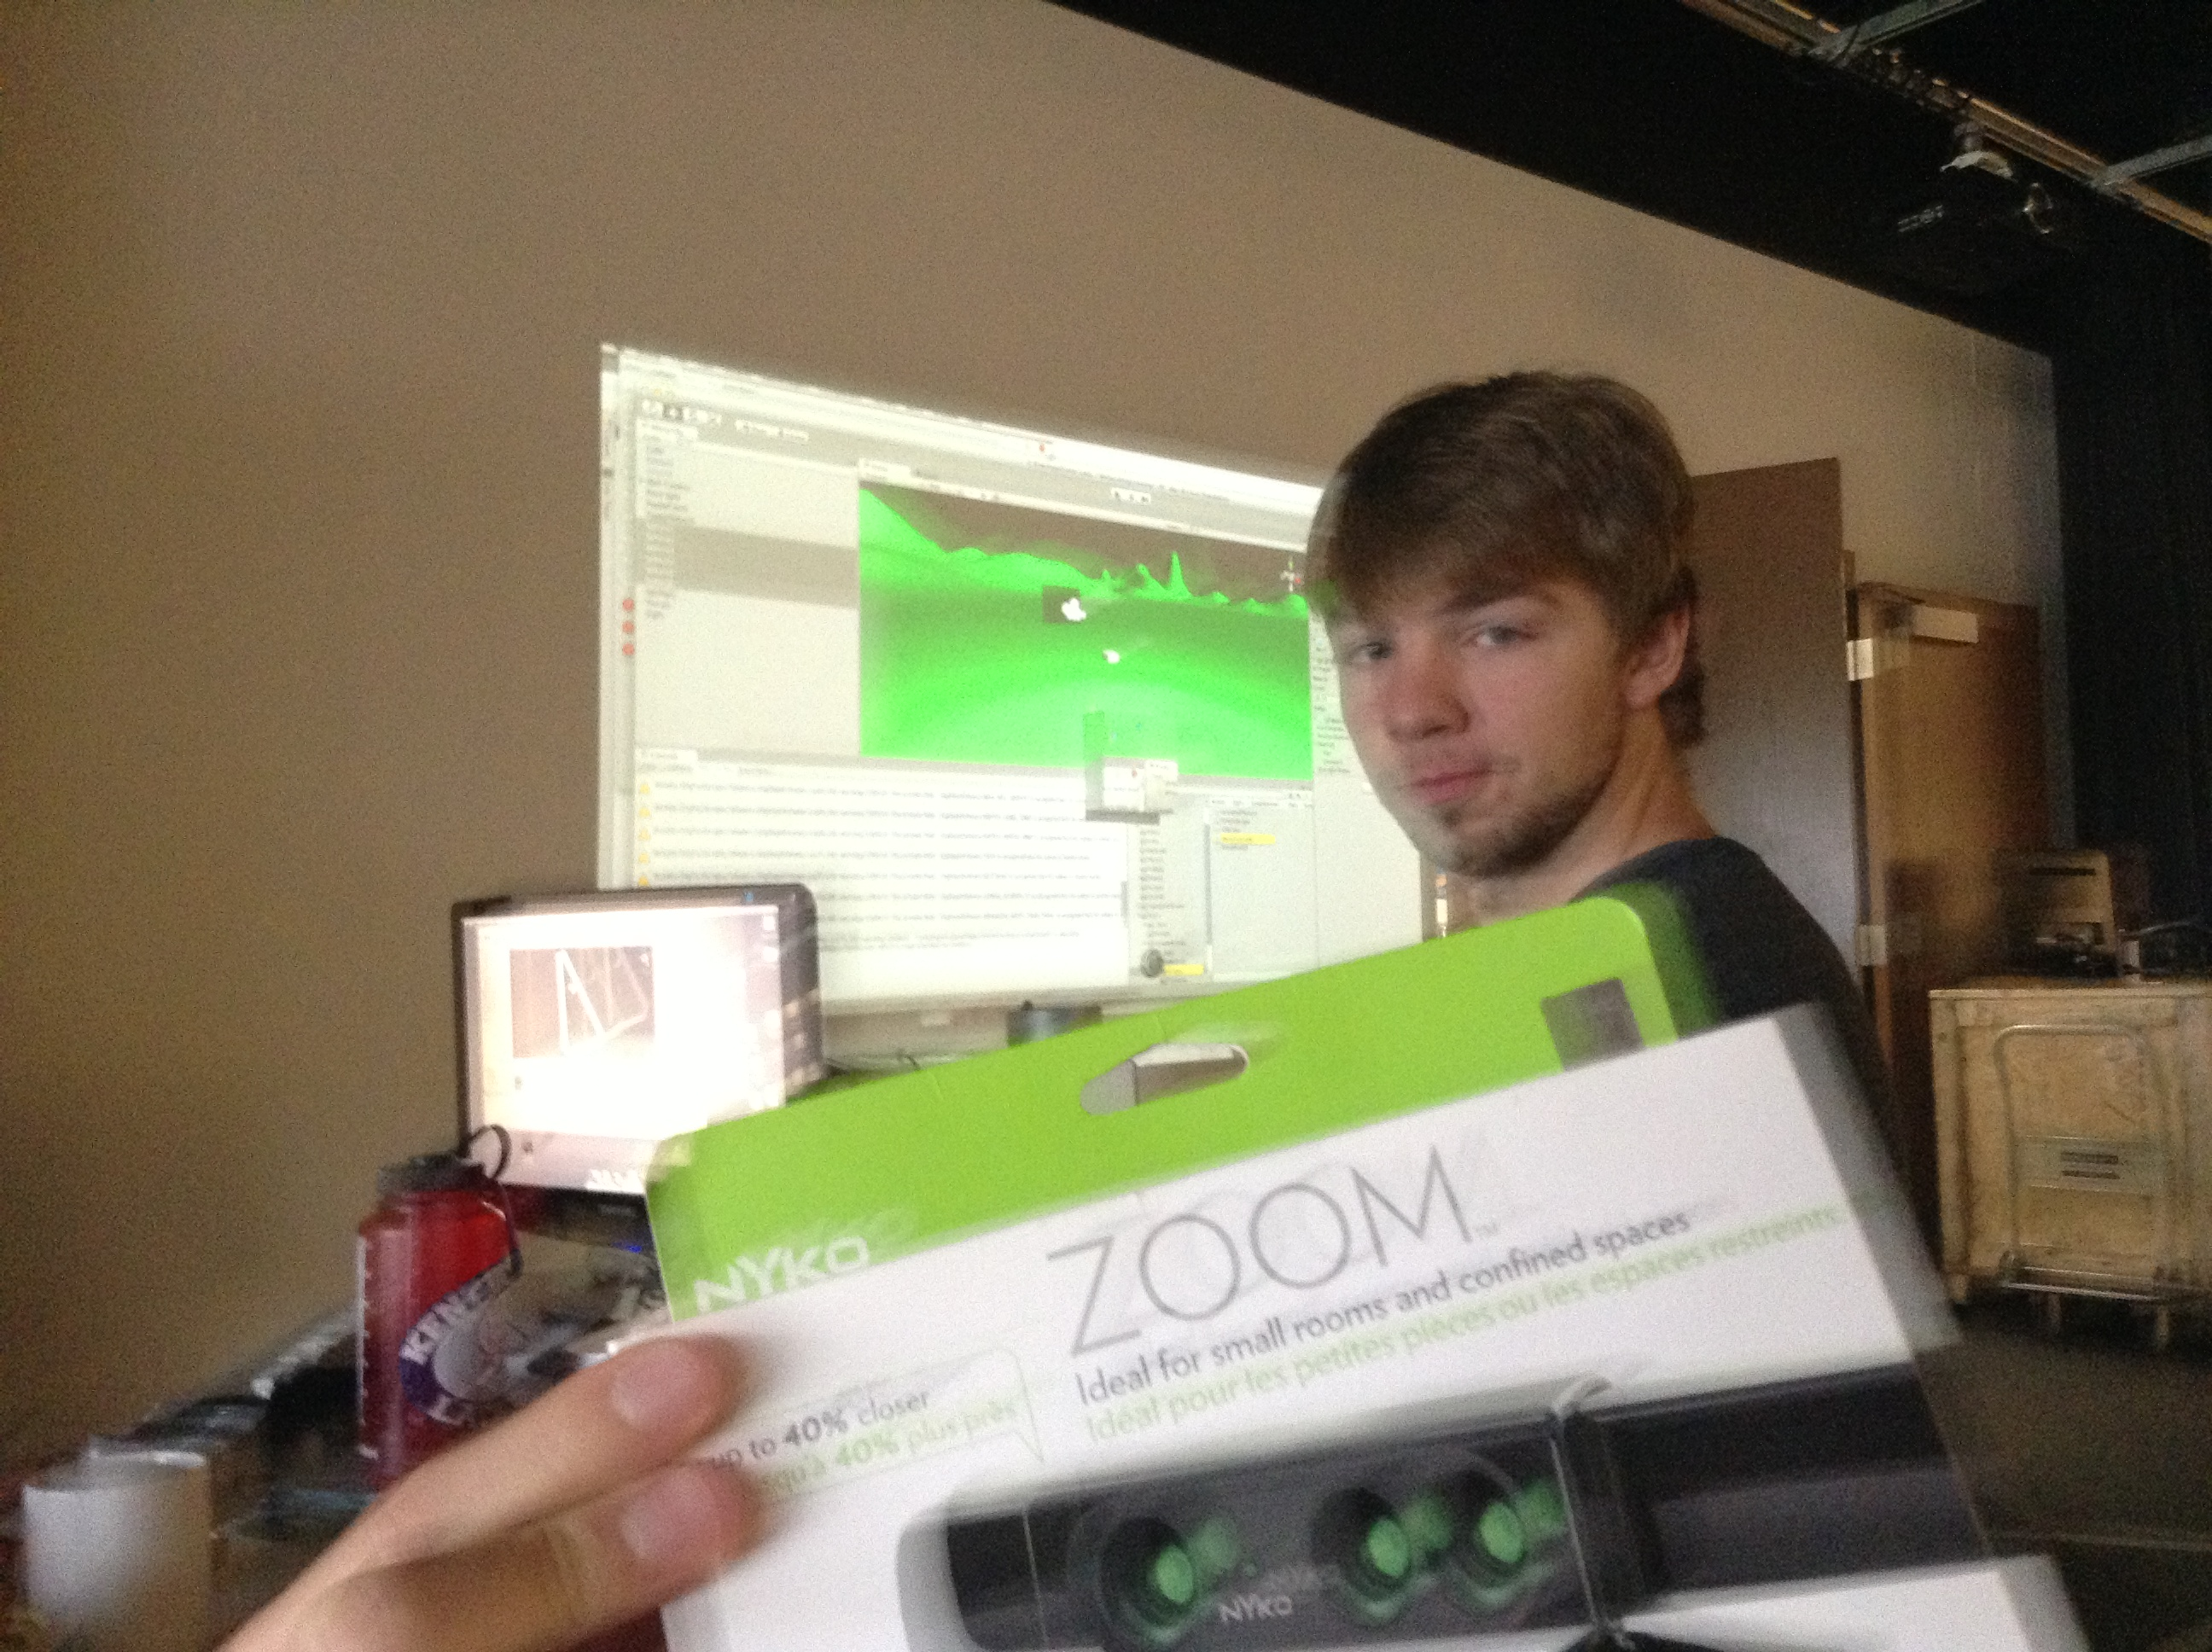 Tommy Hoffmann working to optimize code now that we've attached Nyko Zoom to the Kinect sensor.